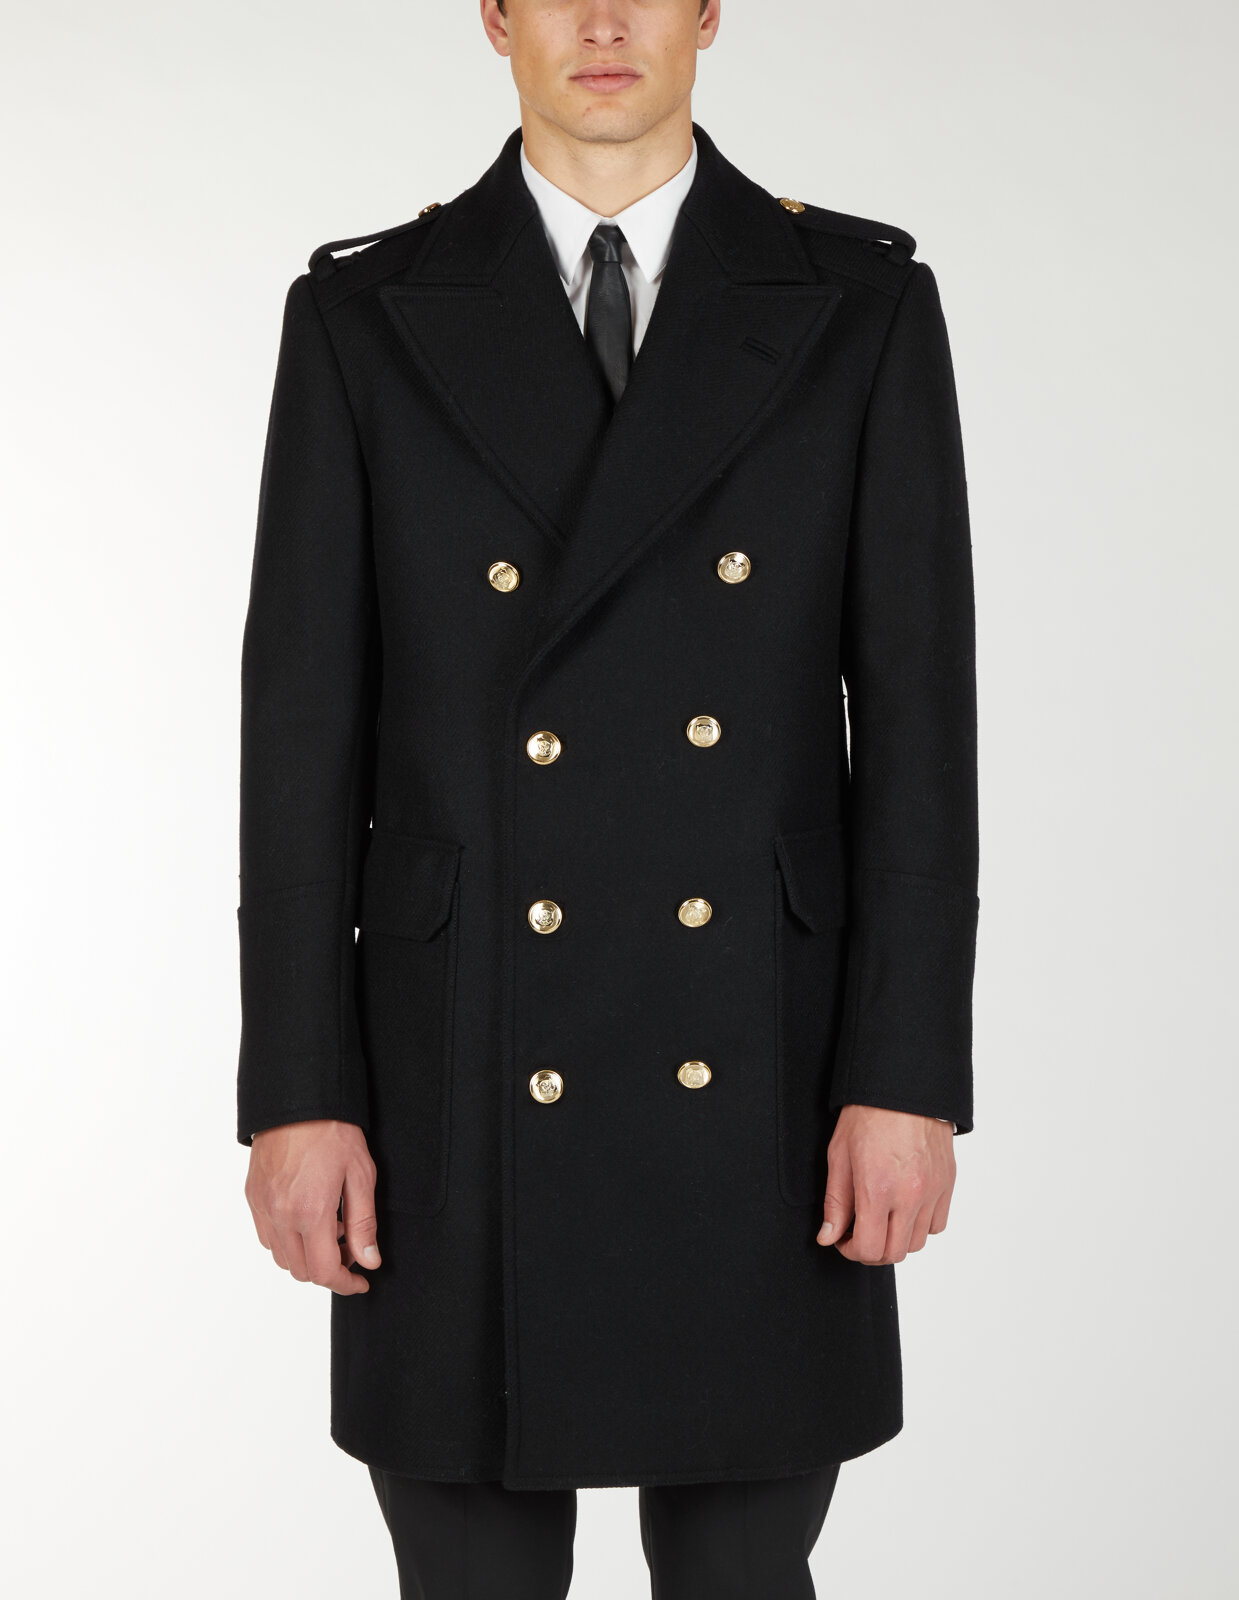 Coat With Military Buttons - Les Hommes